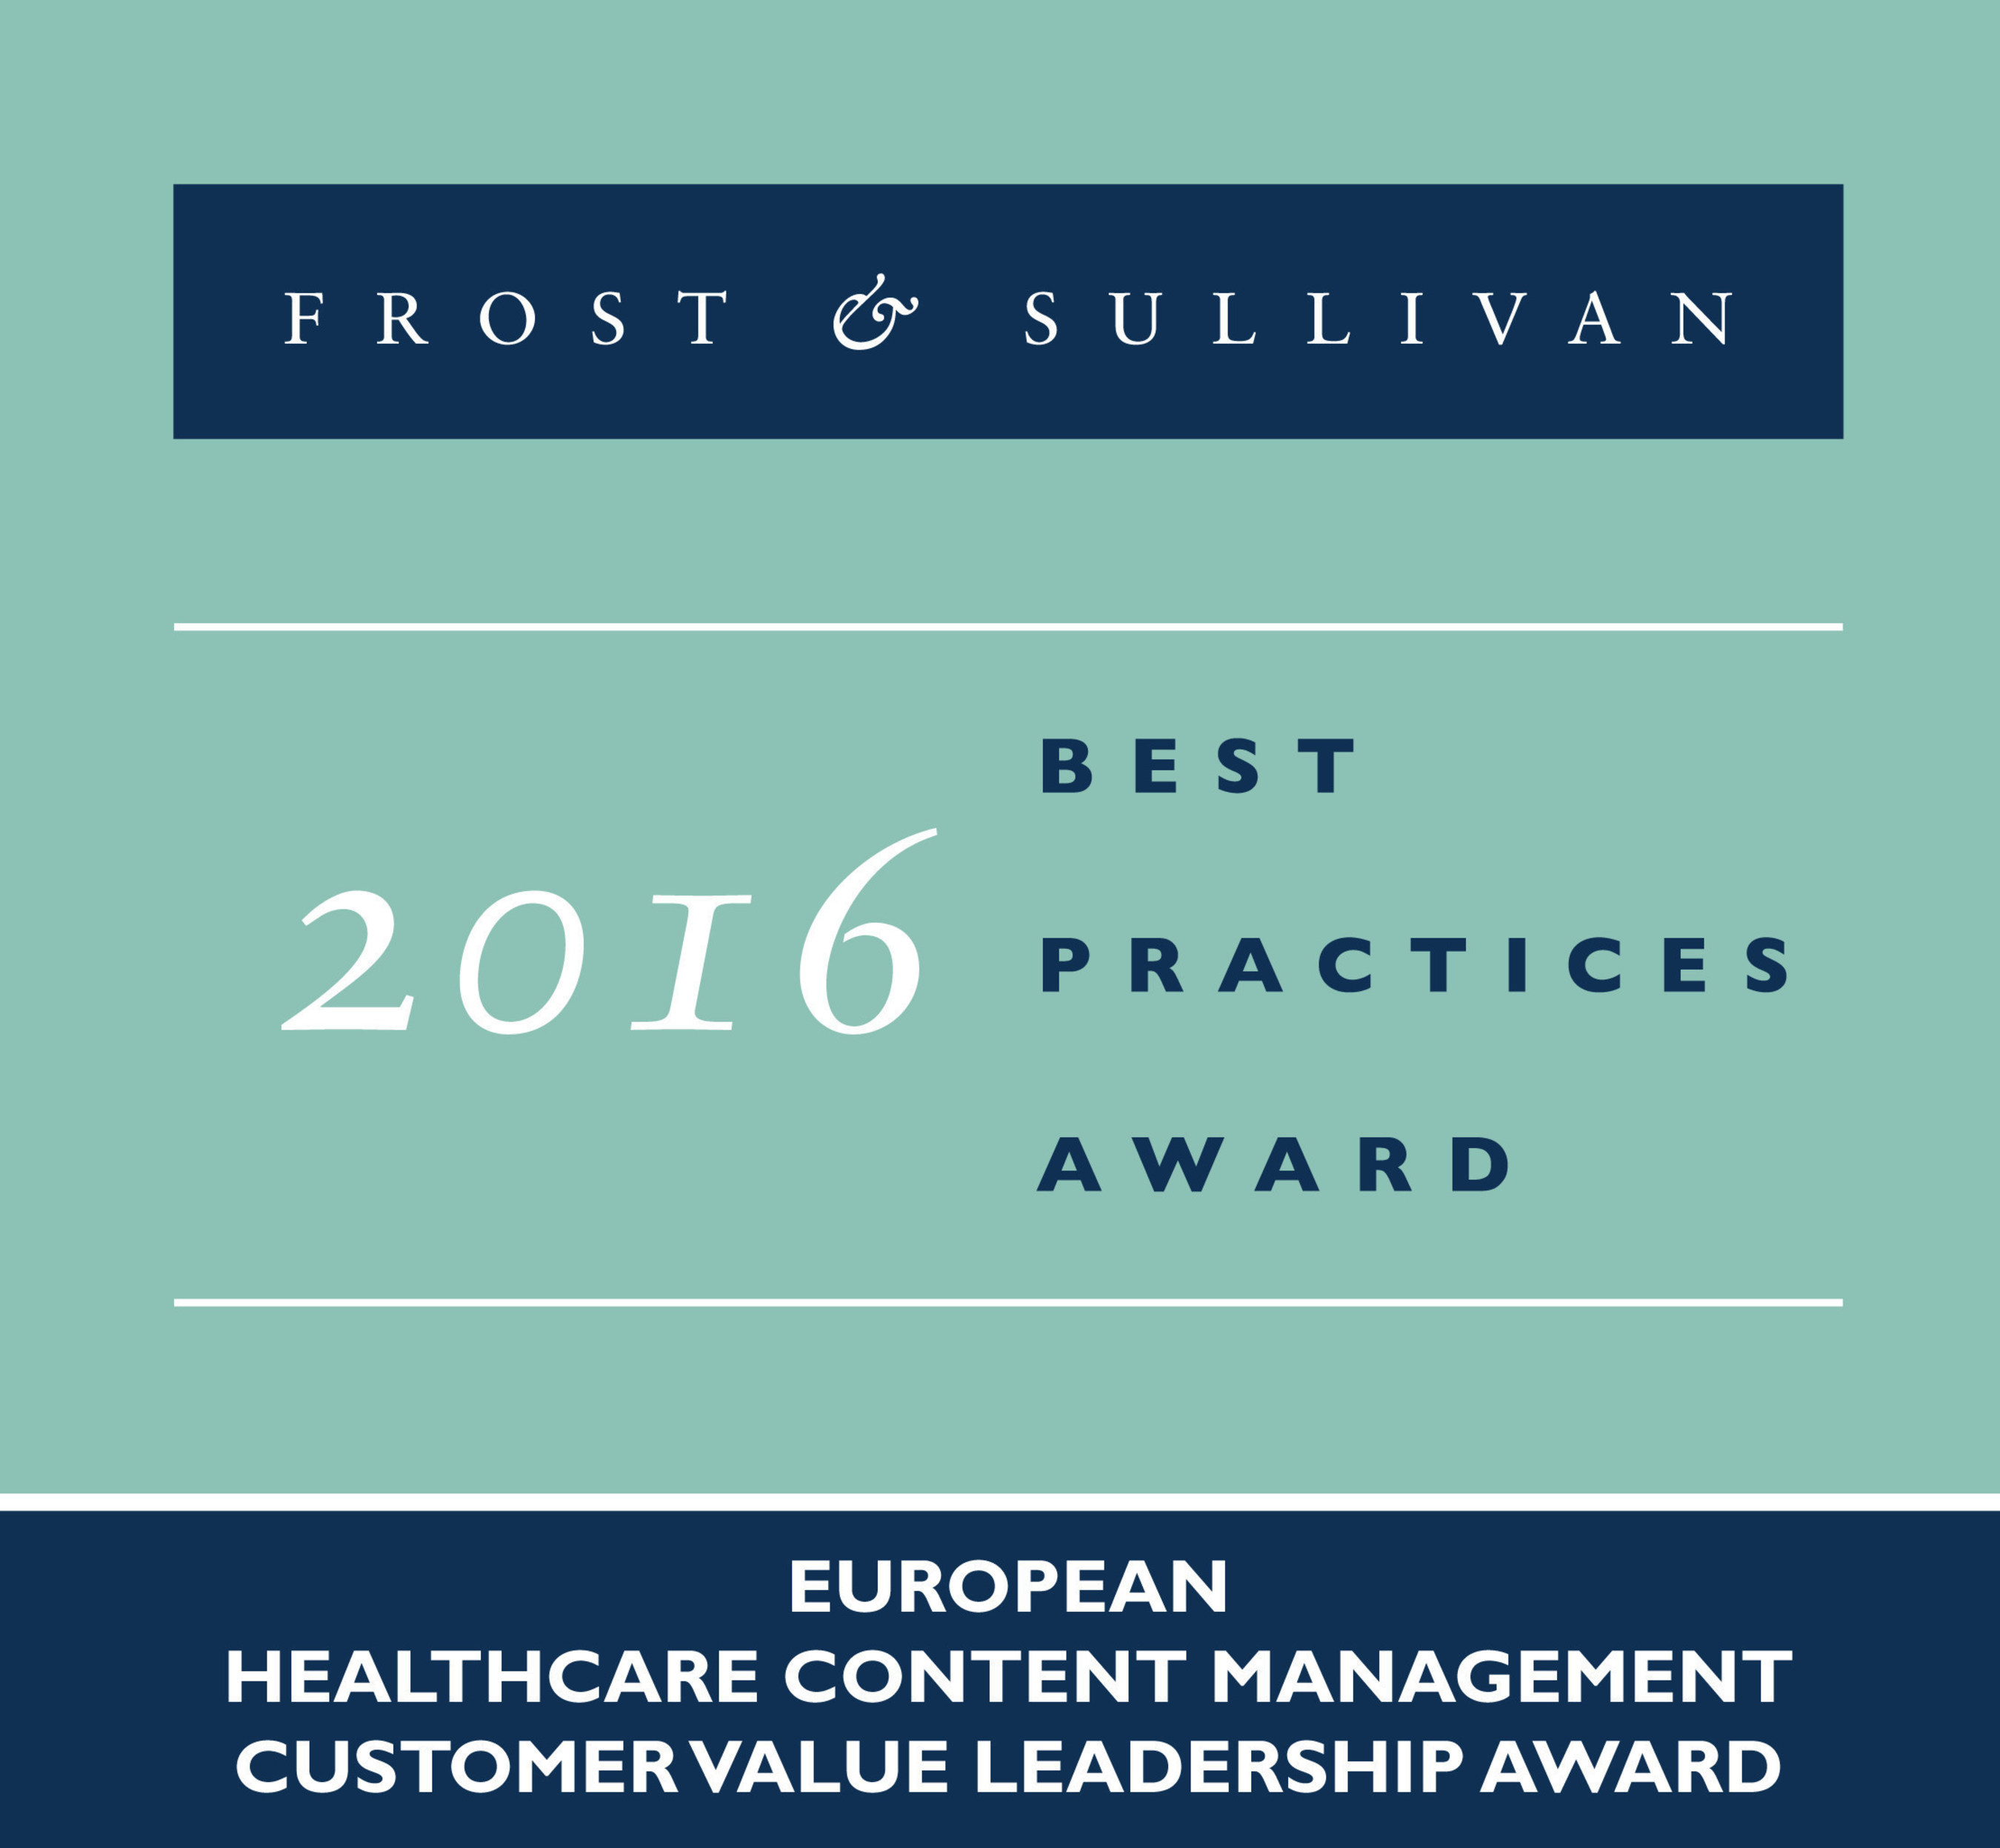 BridgeHead Software Receives Frost & Sullivan Award for Customer Value Leadership in the European